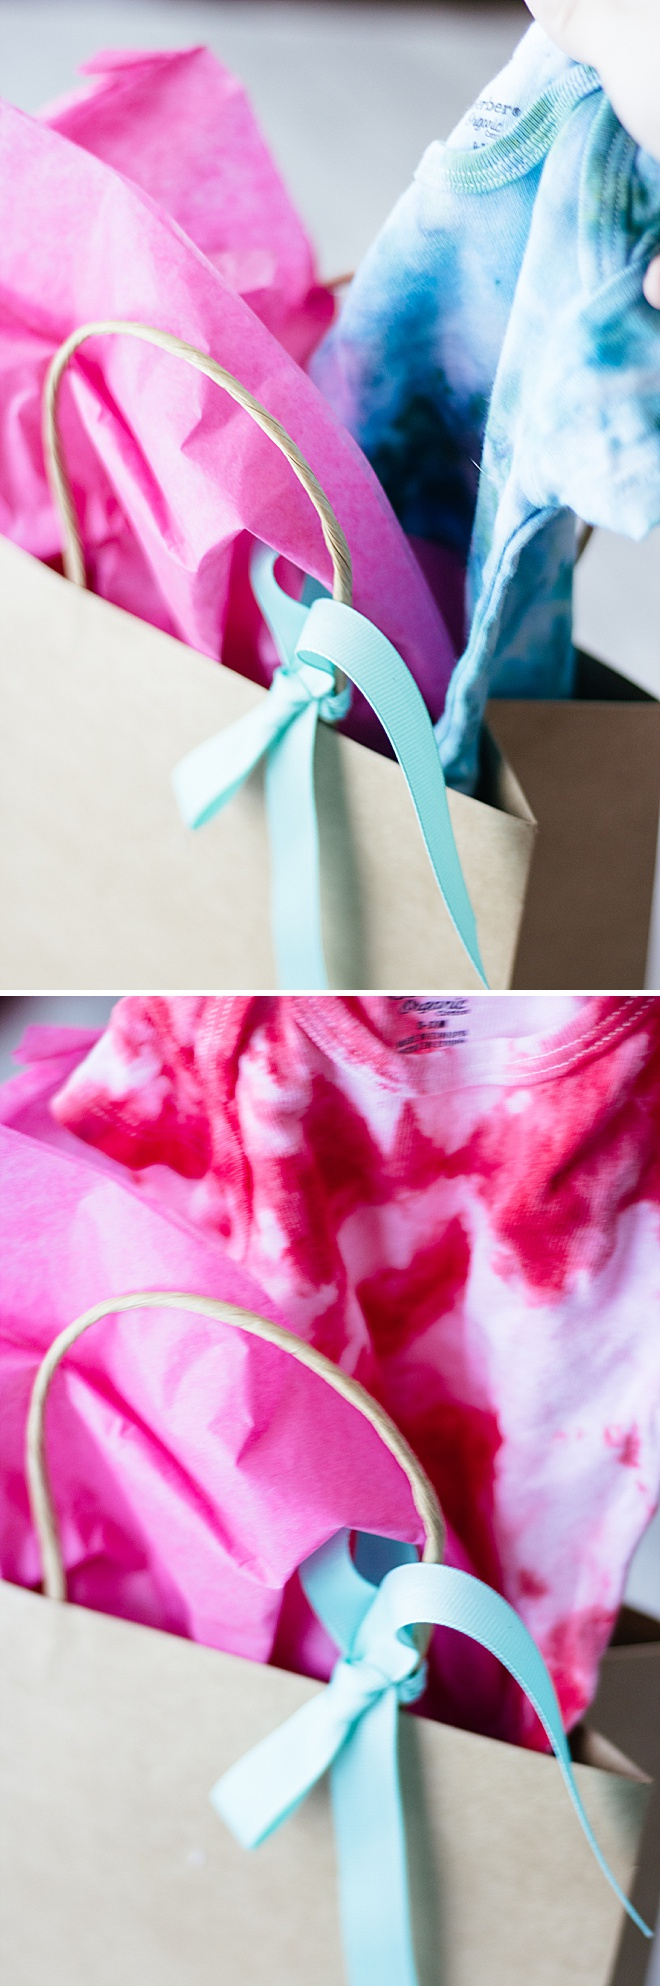 Boy or girl? Reveal your baby gender with this ice-dye DIY!